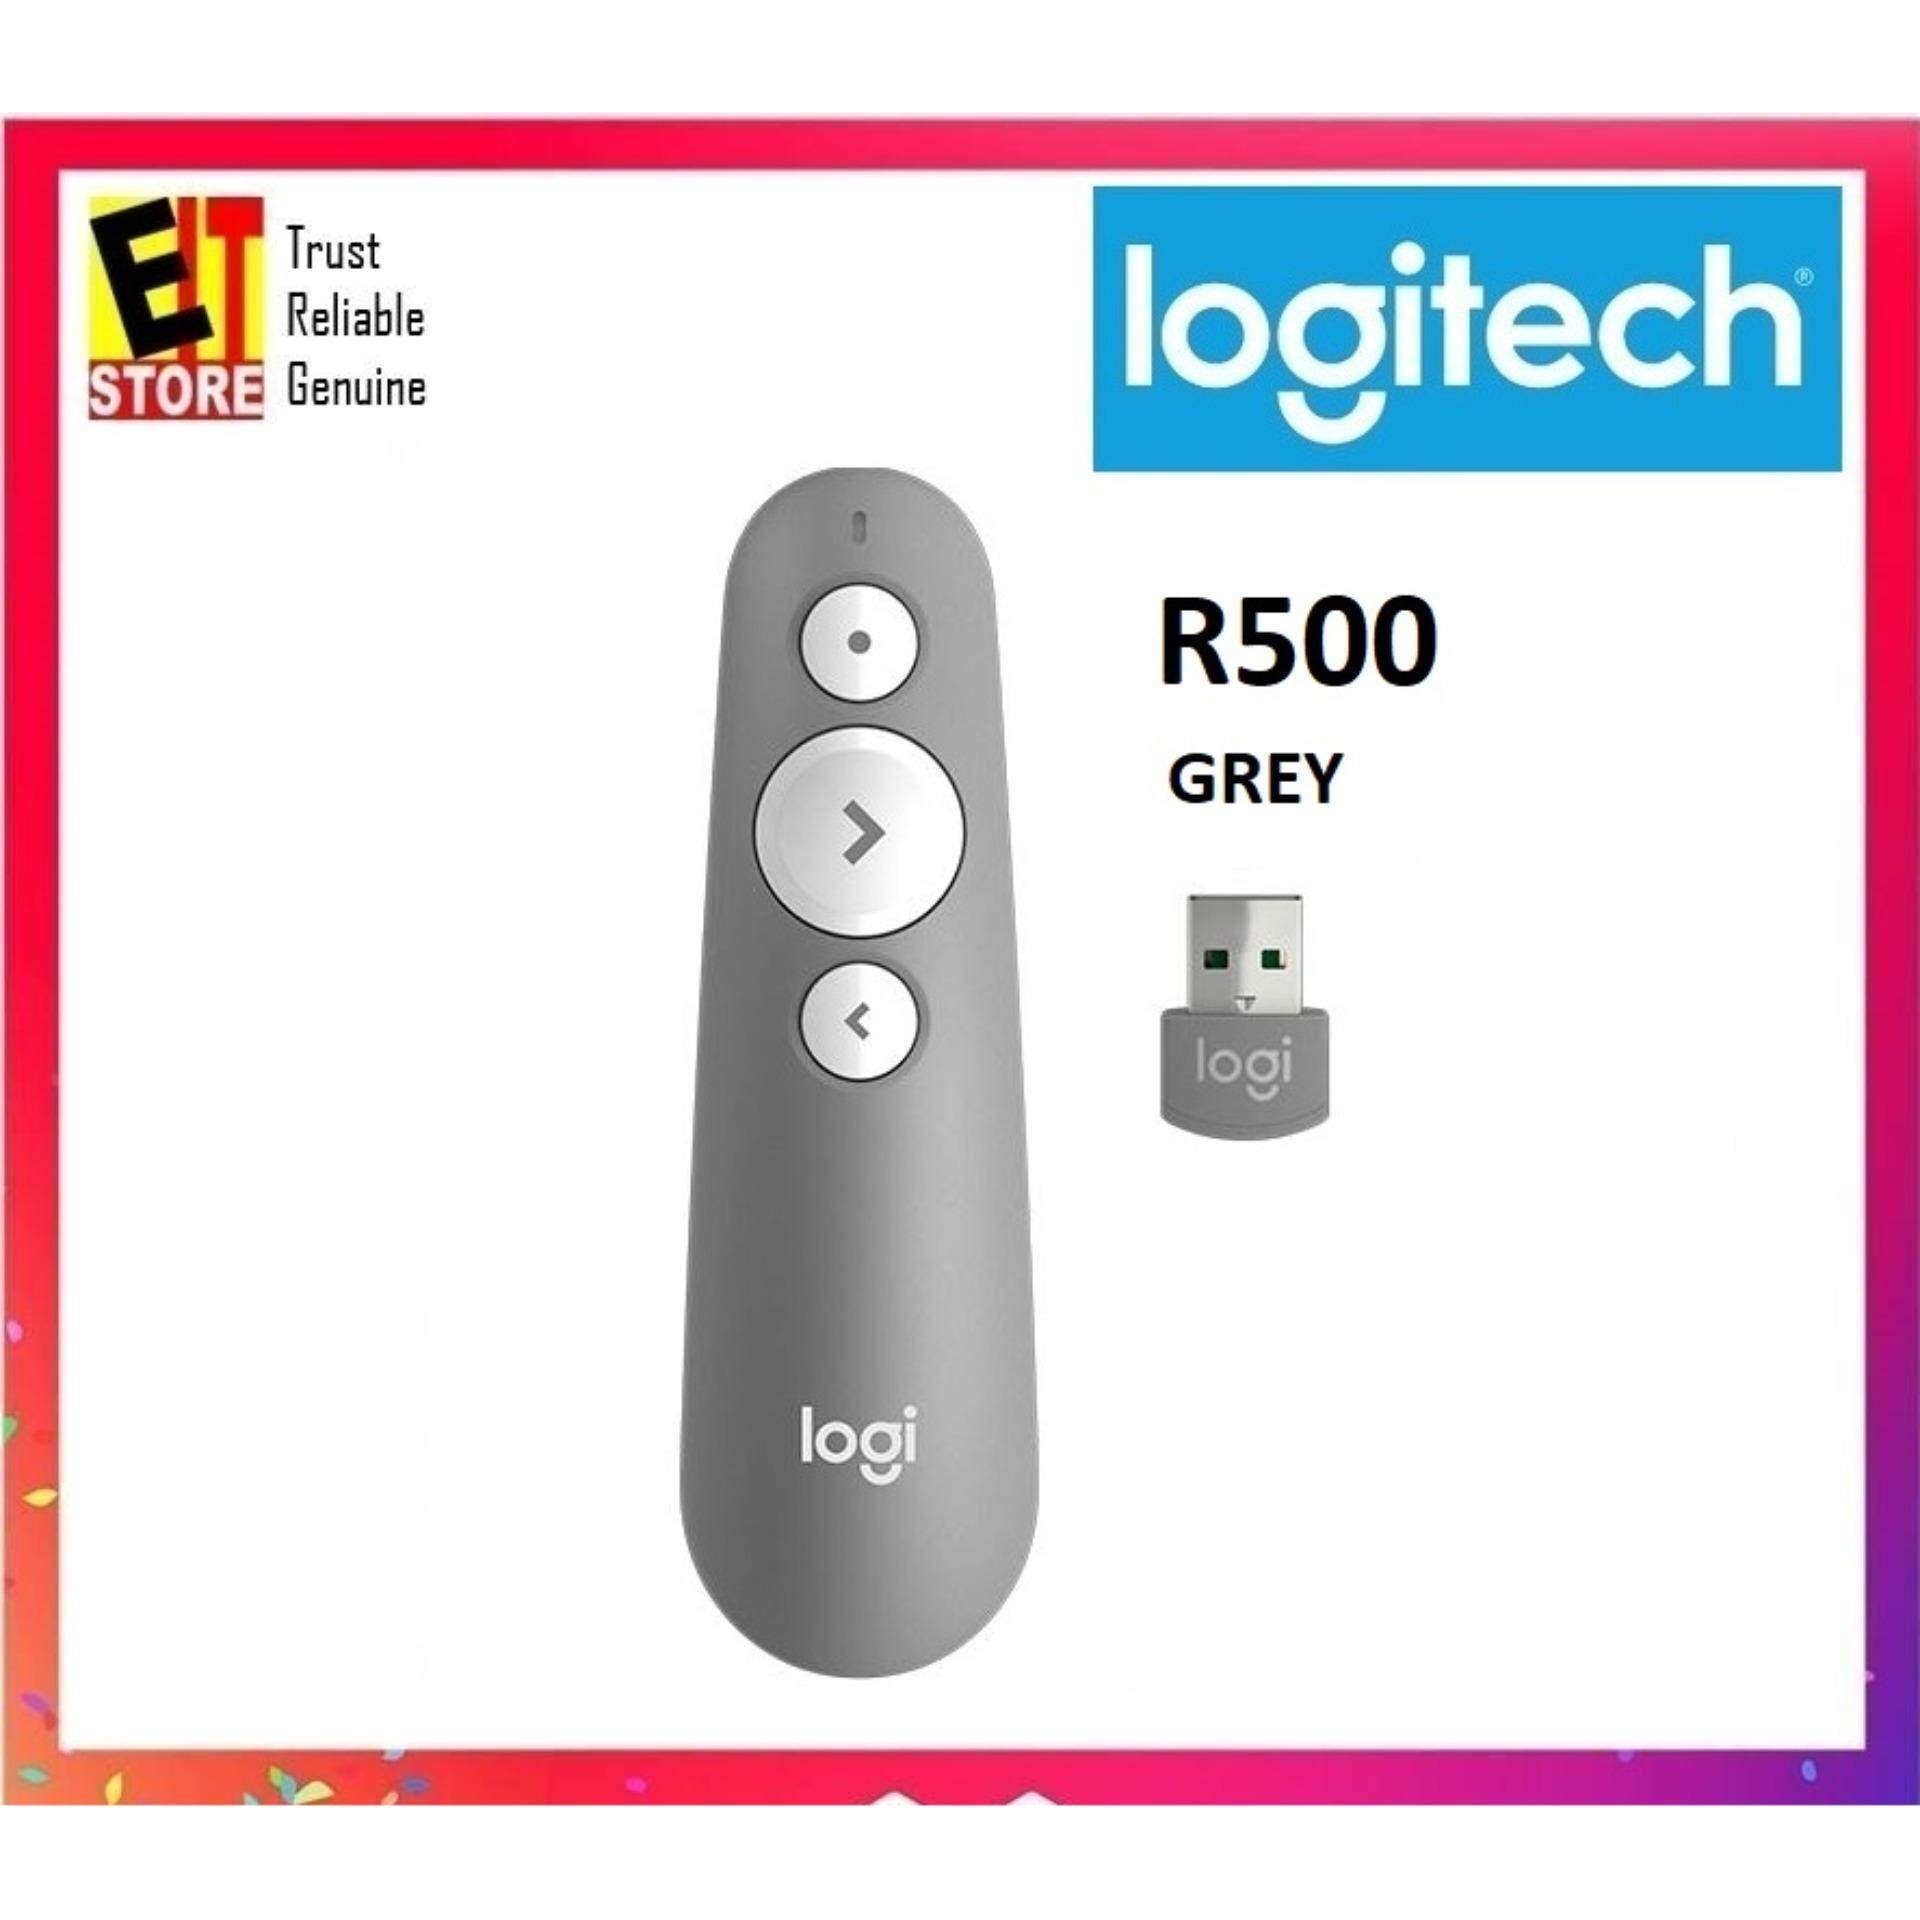 Laser Pointers For The Best Price In Malaysia 303 Atau Hijau Green Logitech R500 Presentation Remote